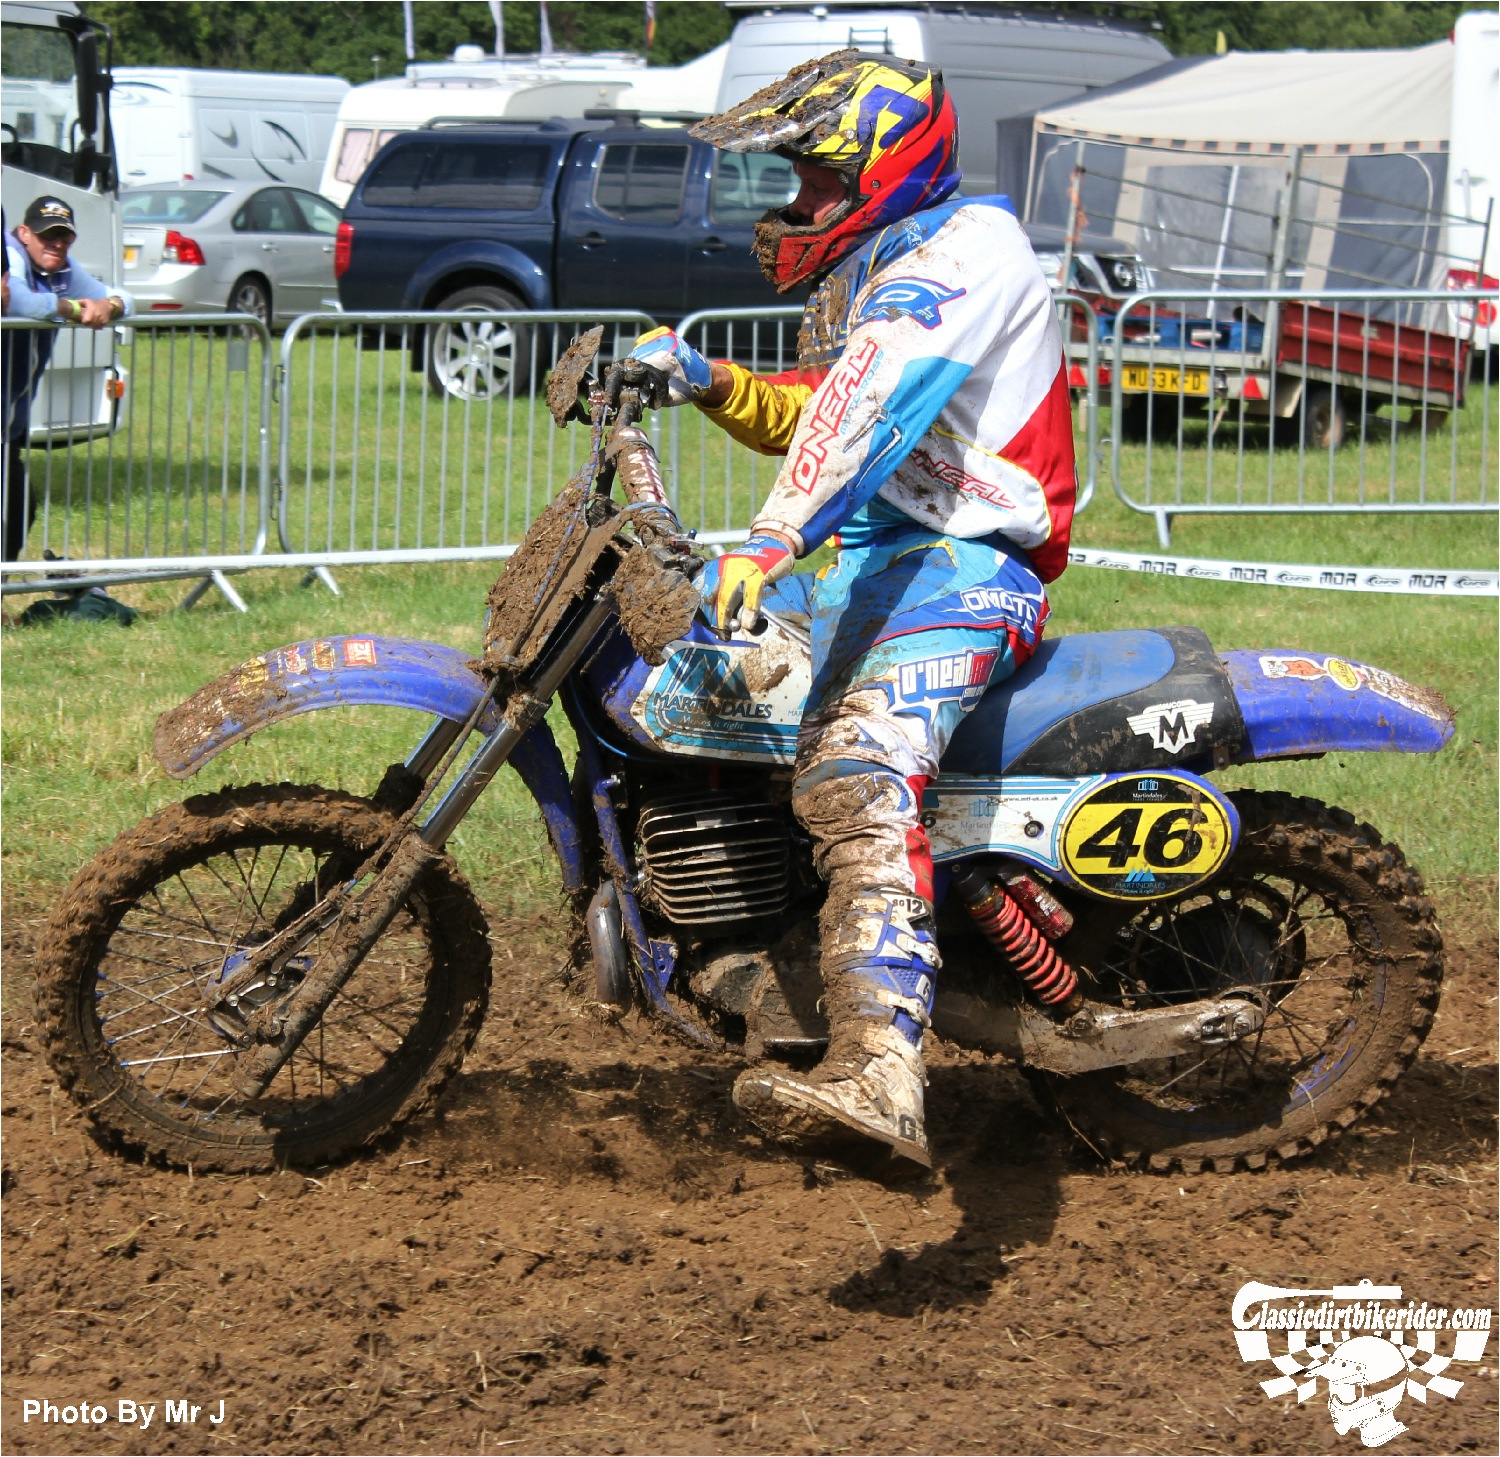 king of the castle 2015 photos Farleigh Castle twinshock motocross classicdirtbikerider.com 82